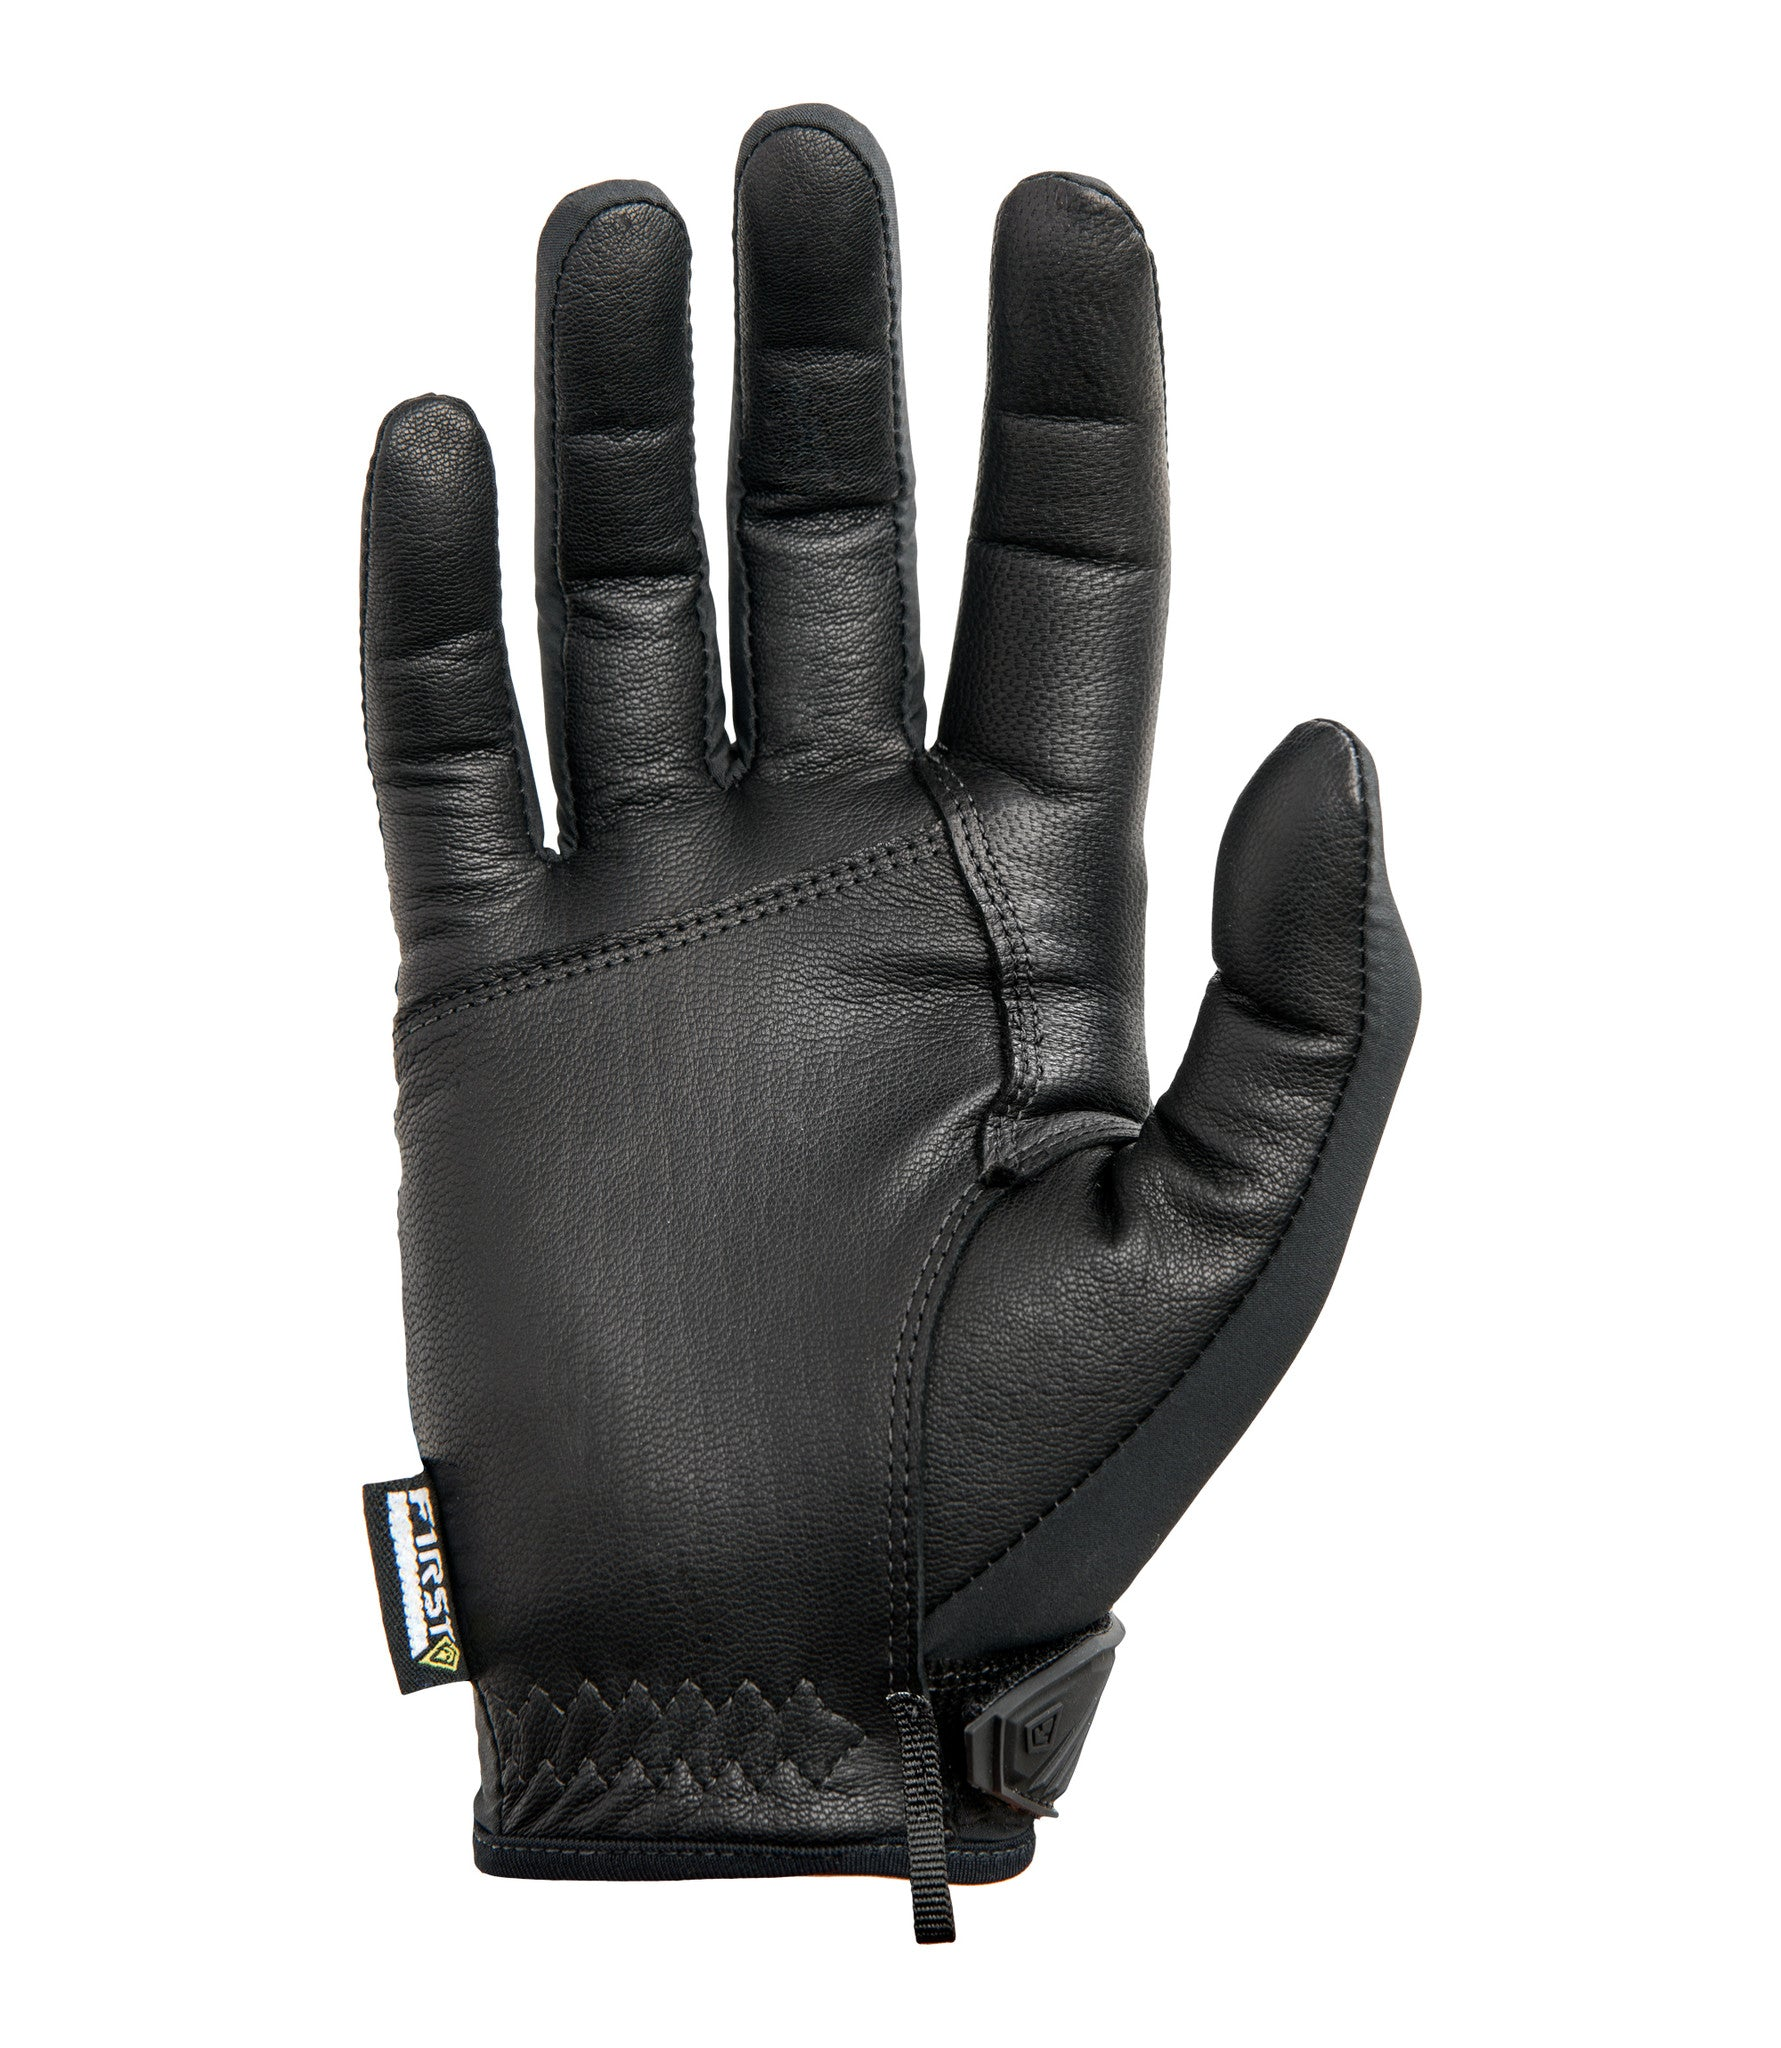 Black gloves mens - Black Palm